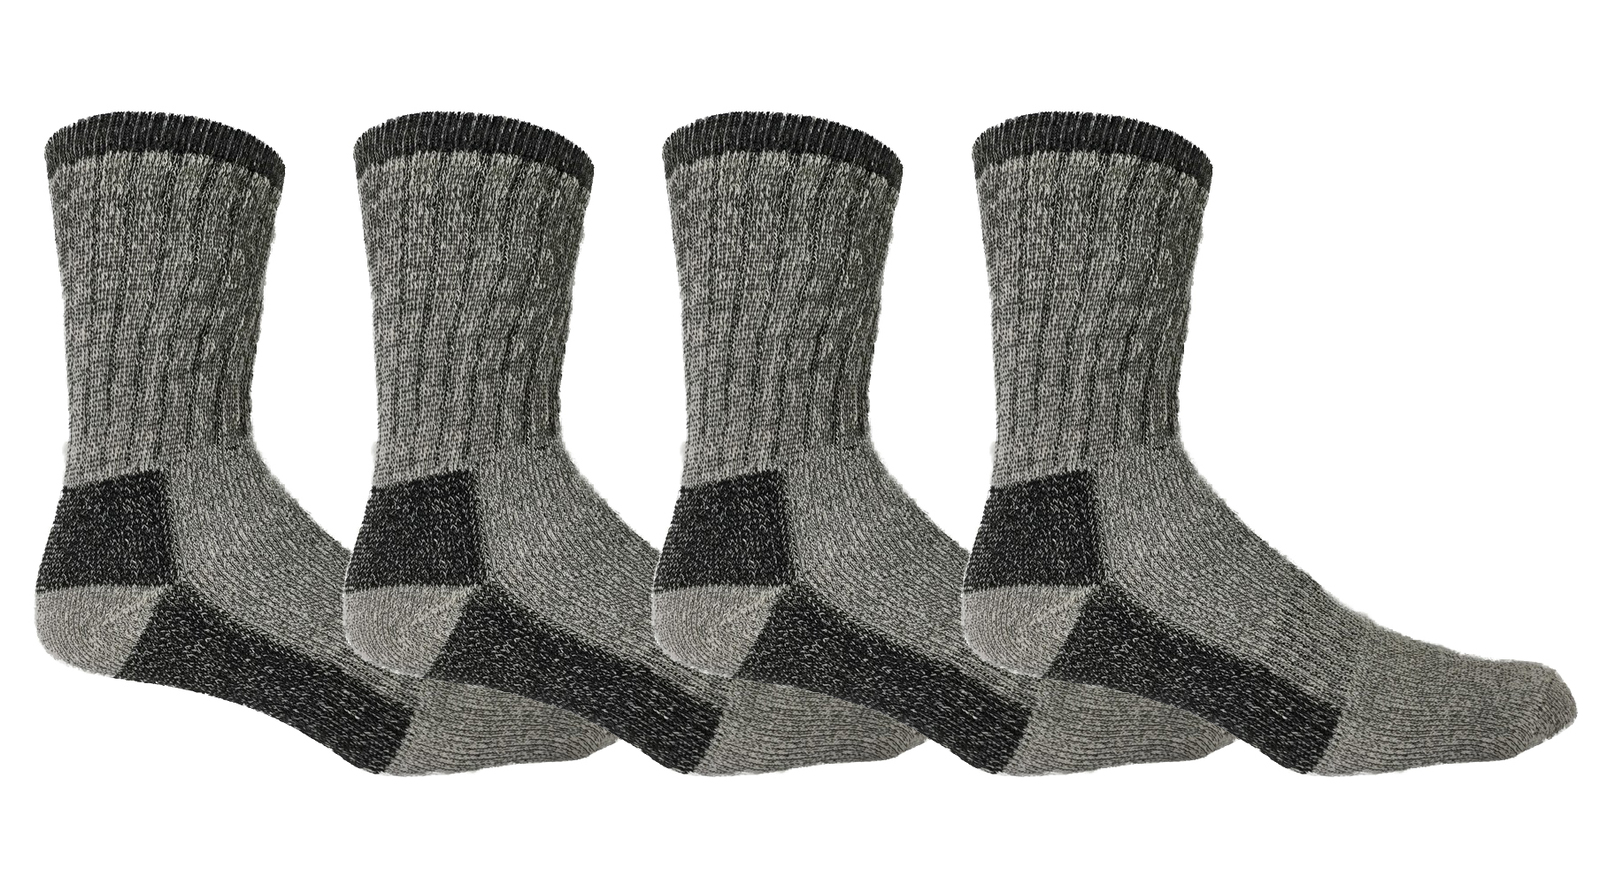 4 Pairs of Womens Merino Wool Socks 68%, Trail Hiking Camping Warm Thick Thermal